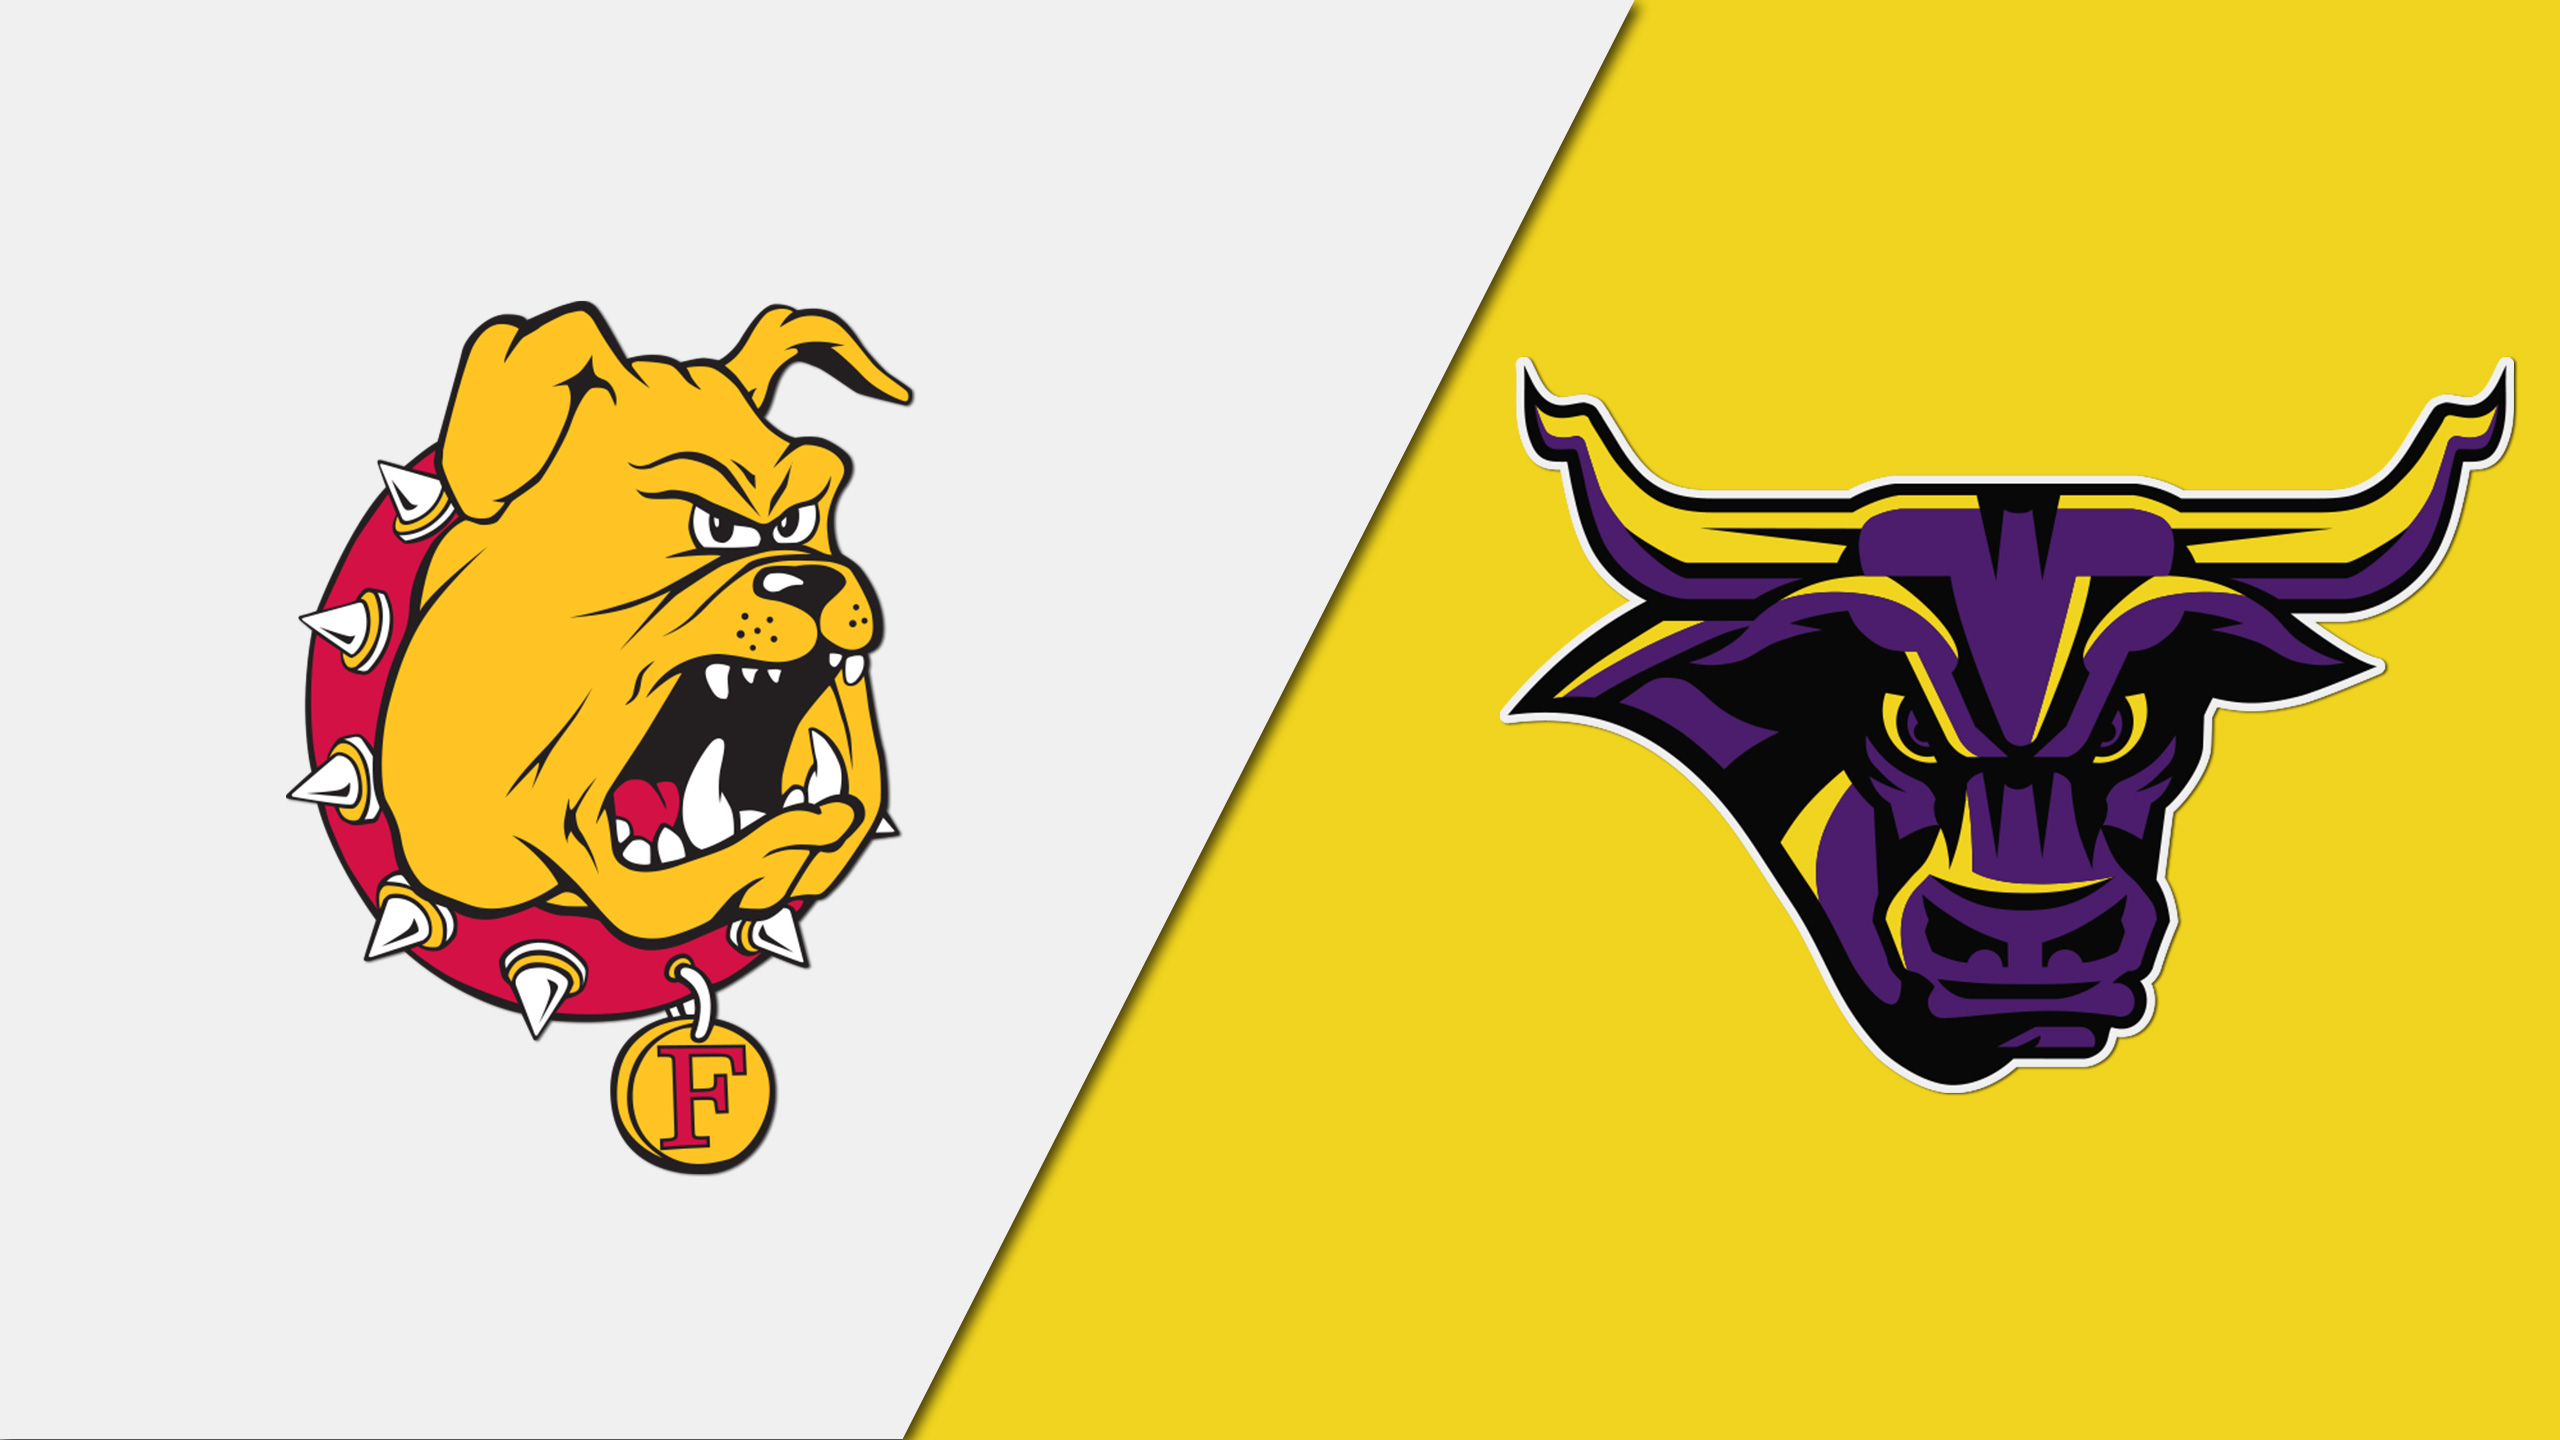 #3 Ferris State (MI) vs. #2 Minnesota State Mankato (Semifinal #2) (NCAA Division II Football Championship) (re-air)